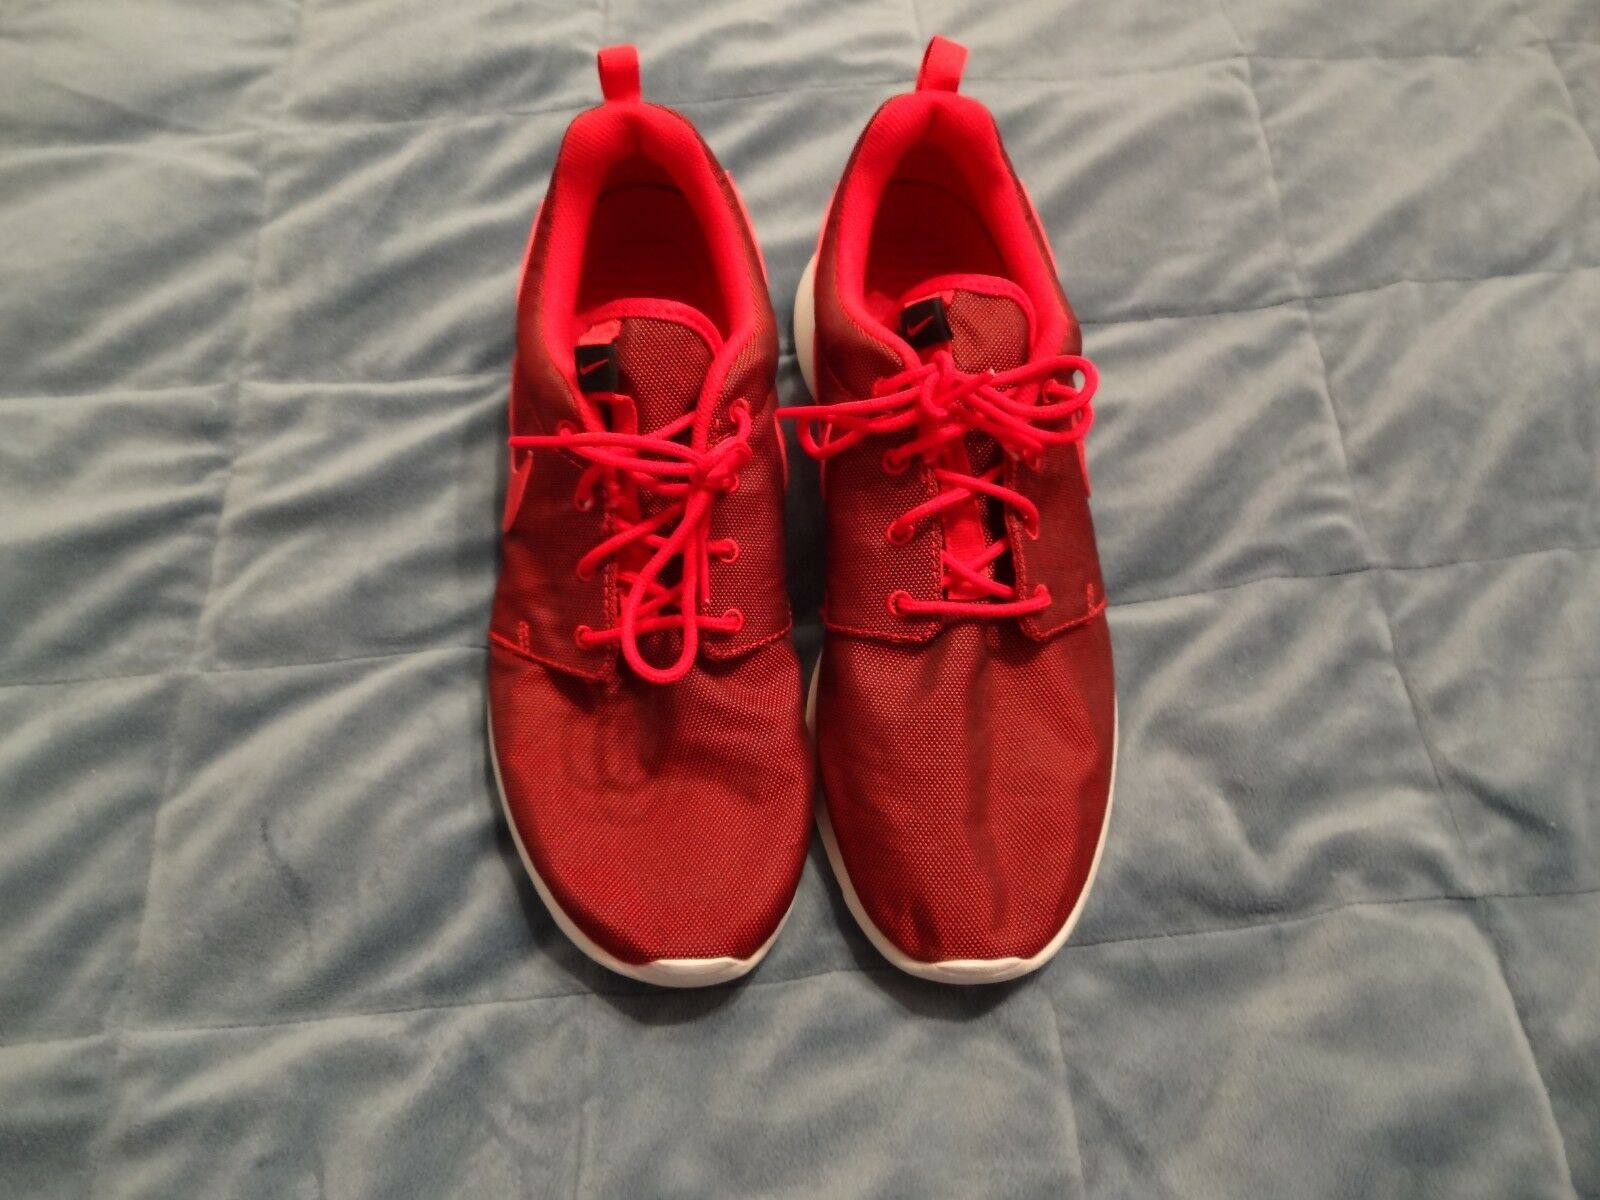 86dc4d0e217e7 ... Nike Roshe One Premium Mens Running Running Running shoes 11 University  Red 525234 660 babe7e ...